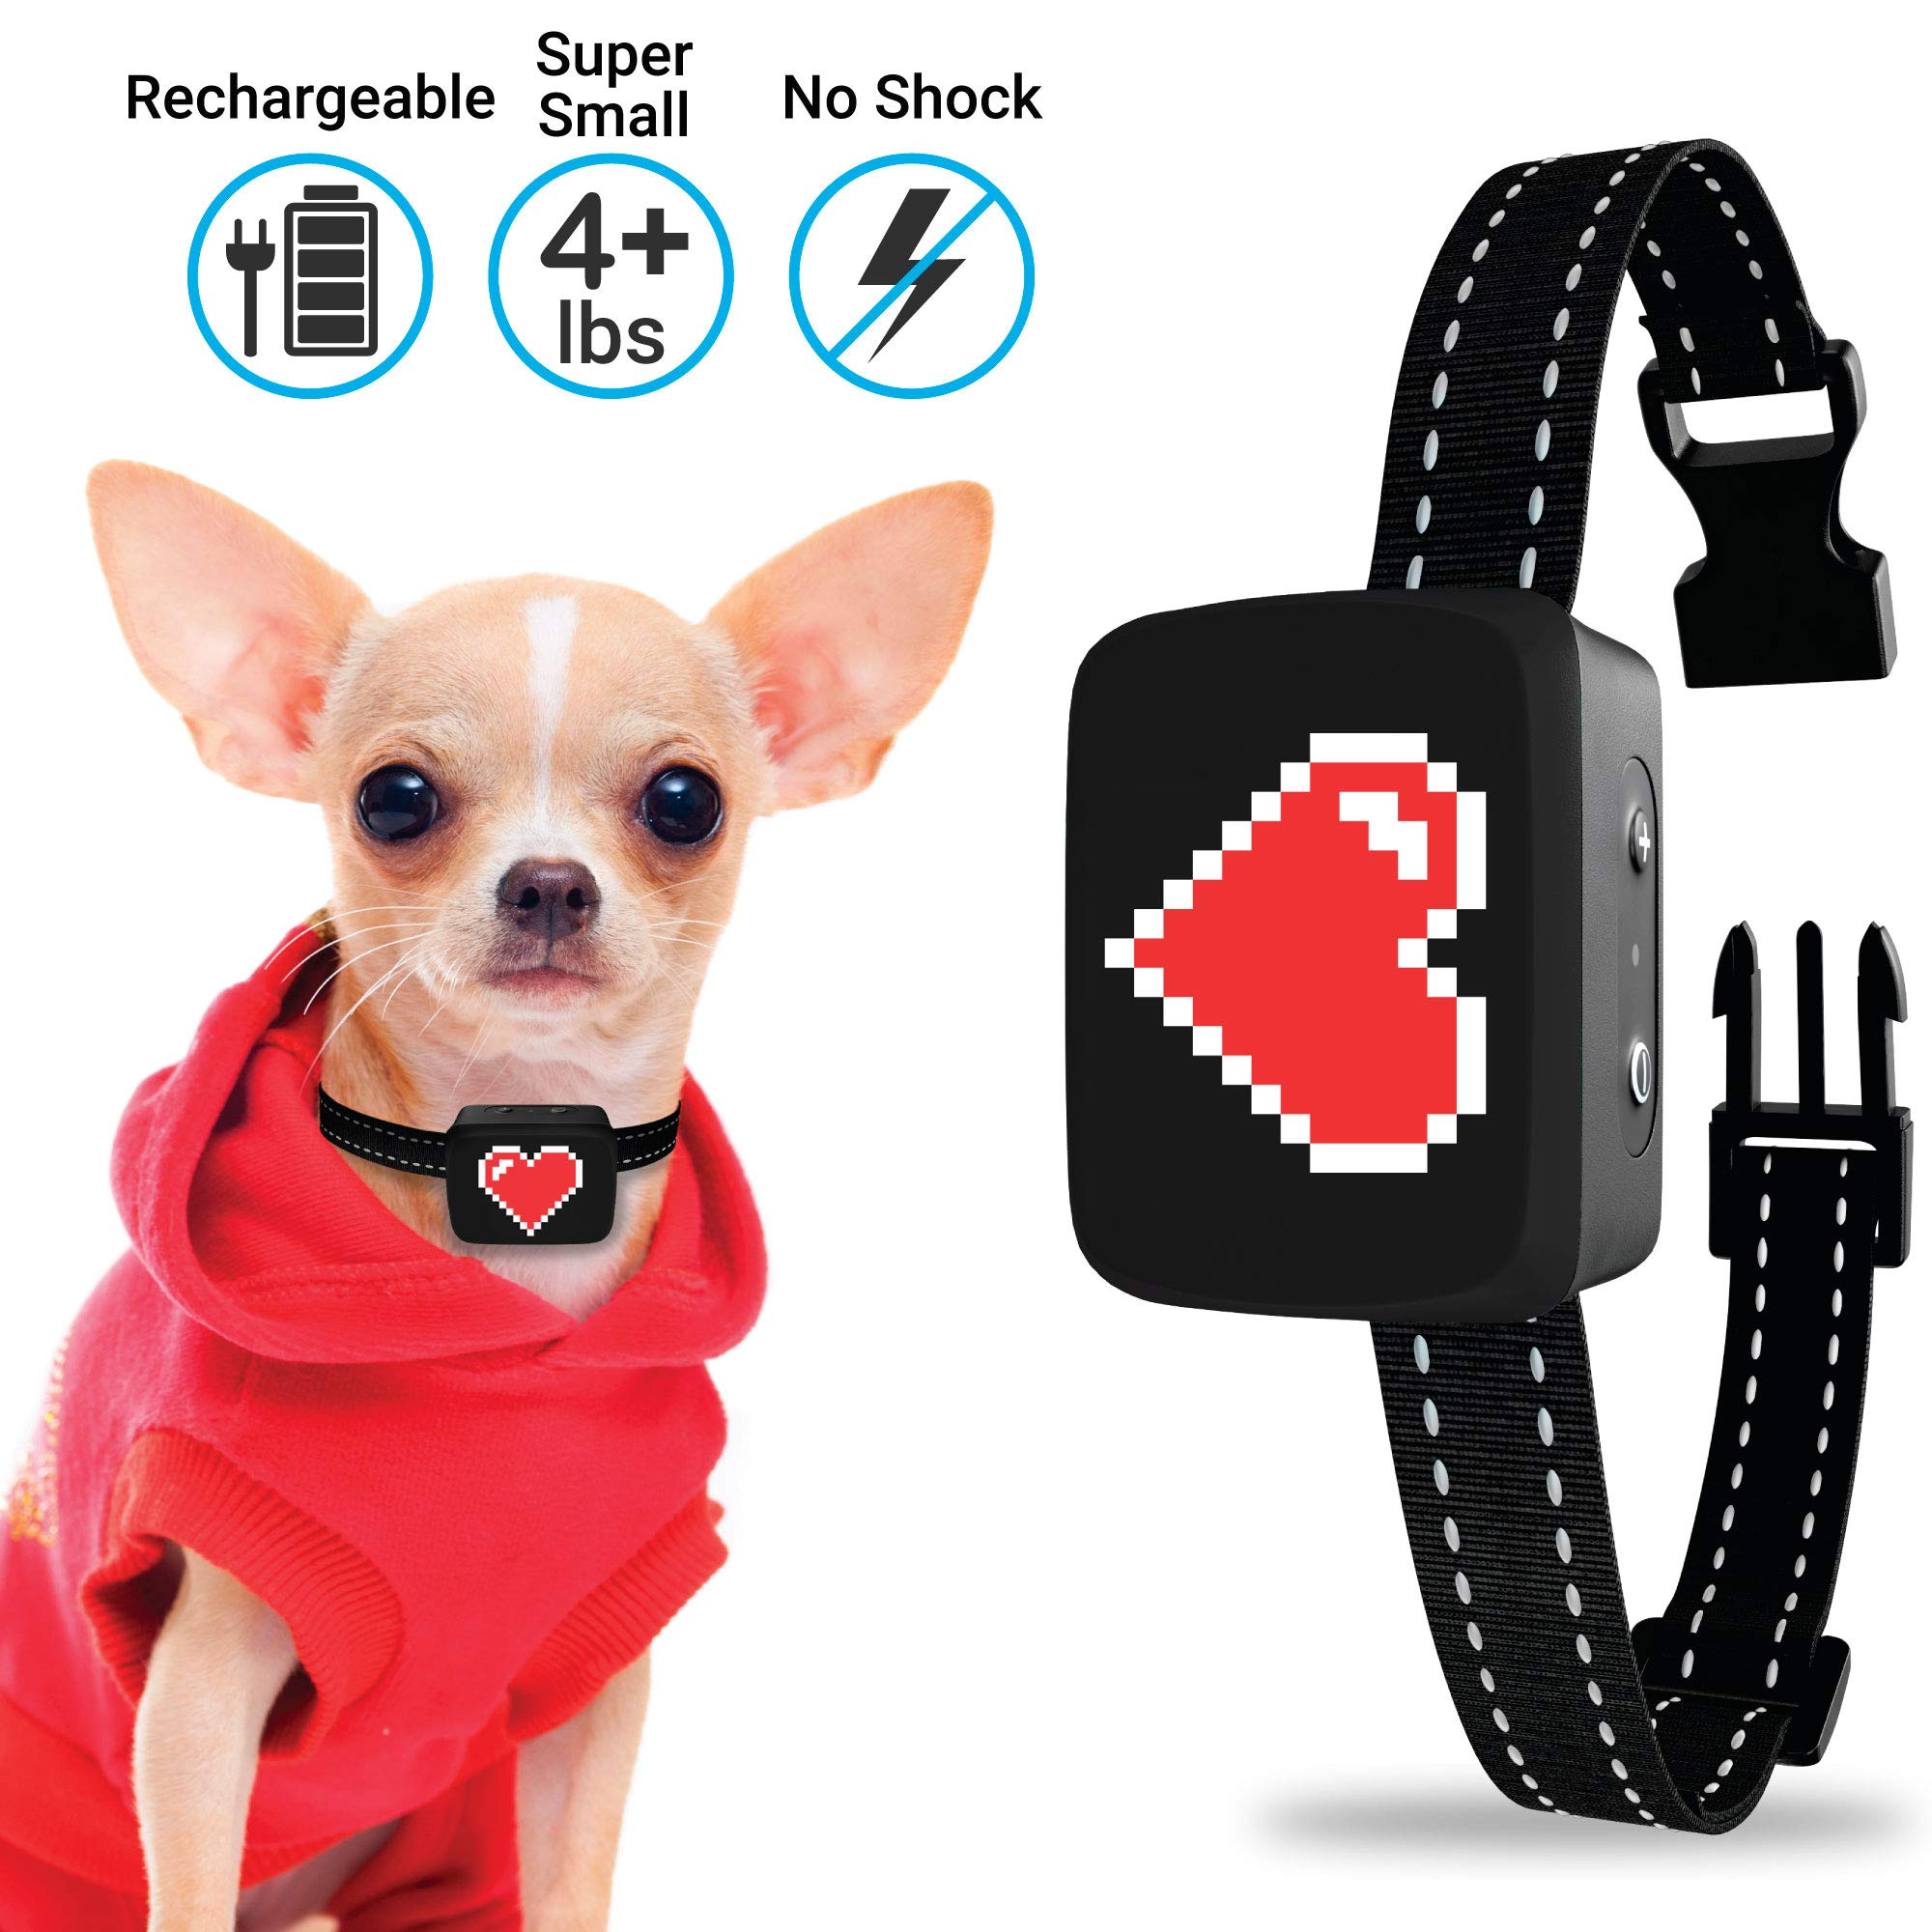 Small Dog Bark Collar Rechargeable – Anti Barking Collar For Small Dogs – Smallest Most Humane Stop Barking Collar – Dog…